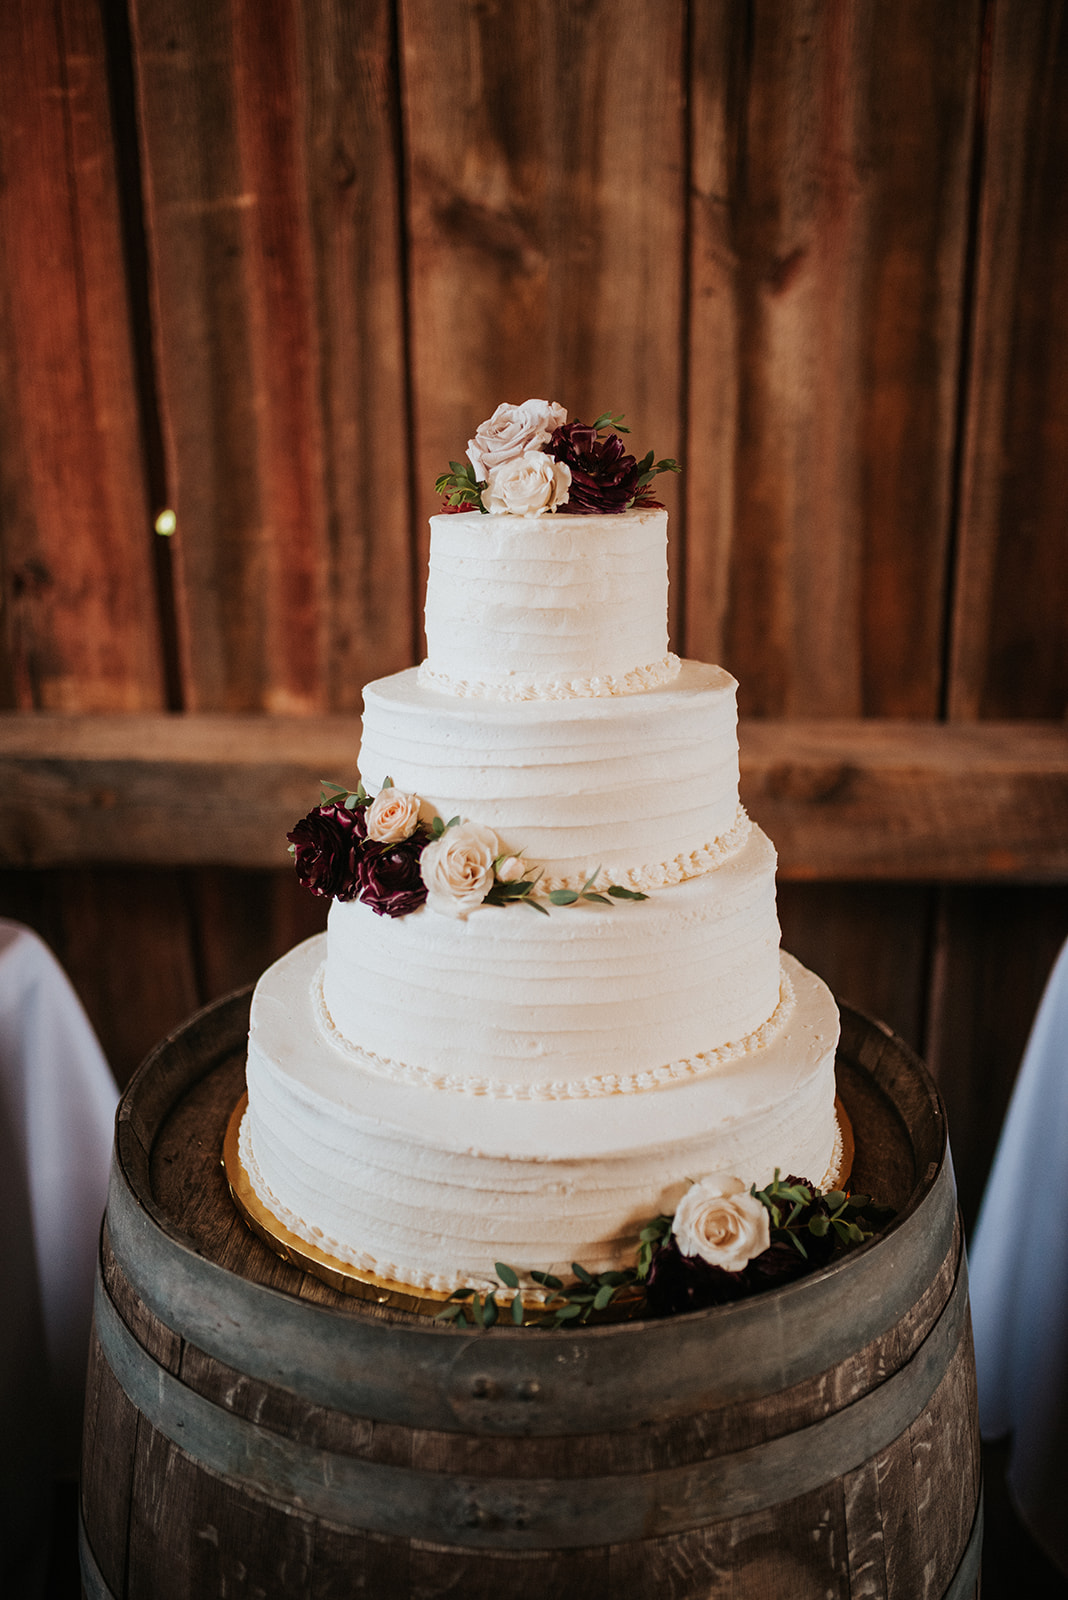 overthevineswisconsinwedding_1175.jpg